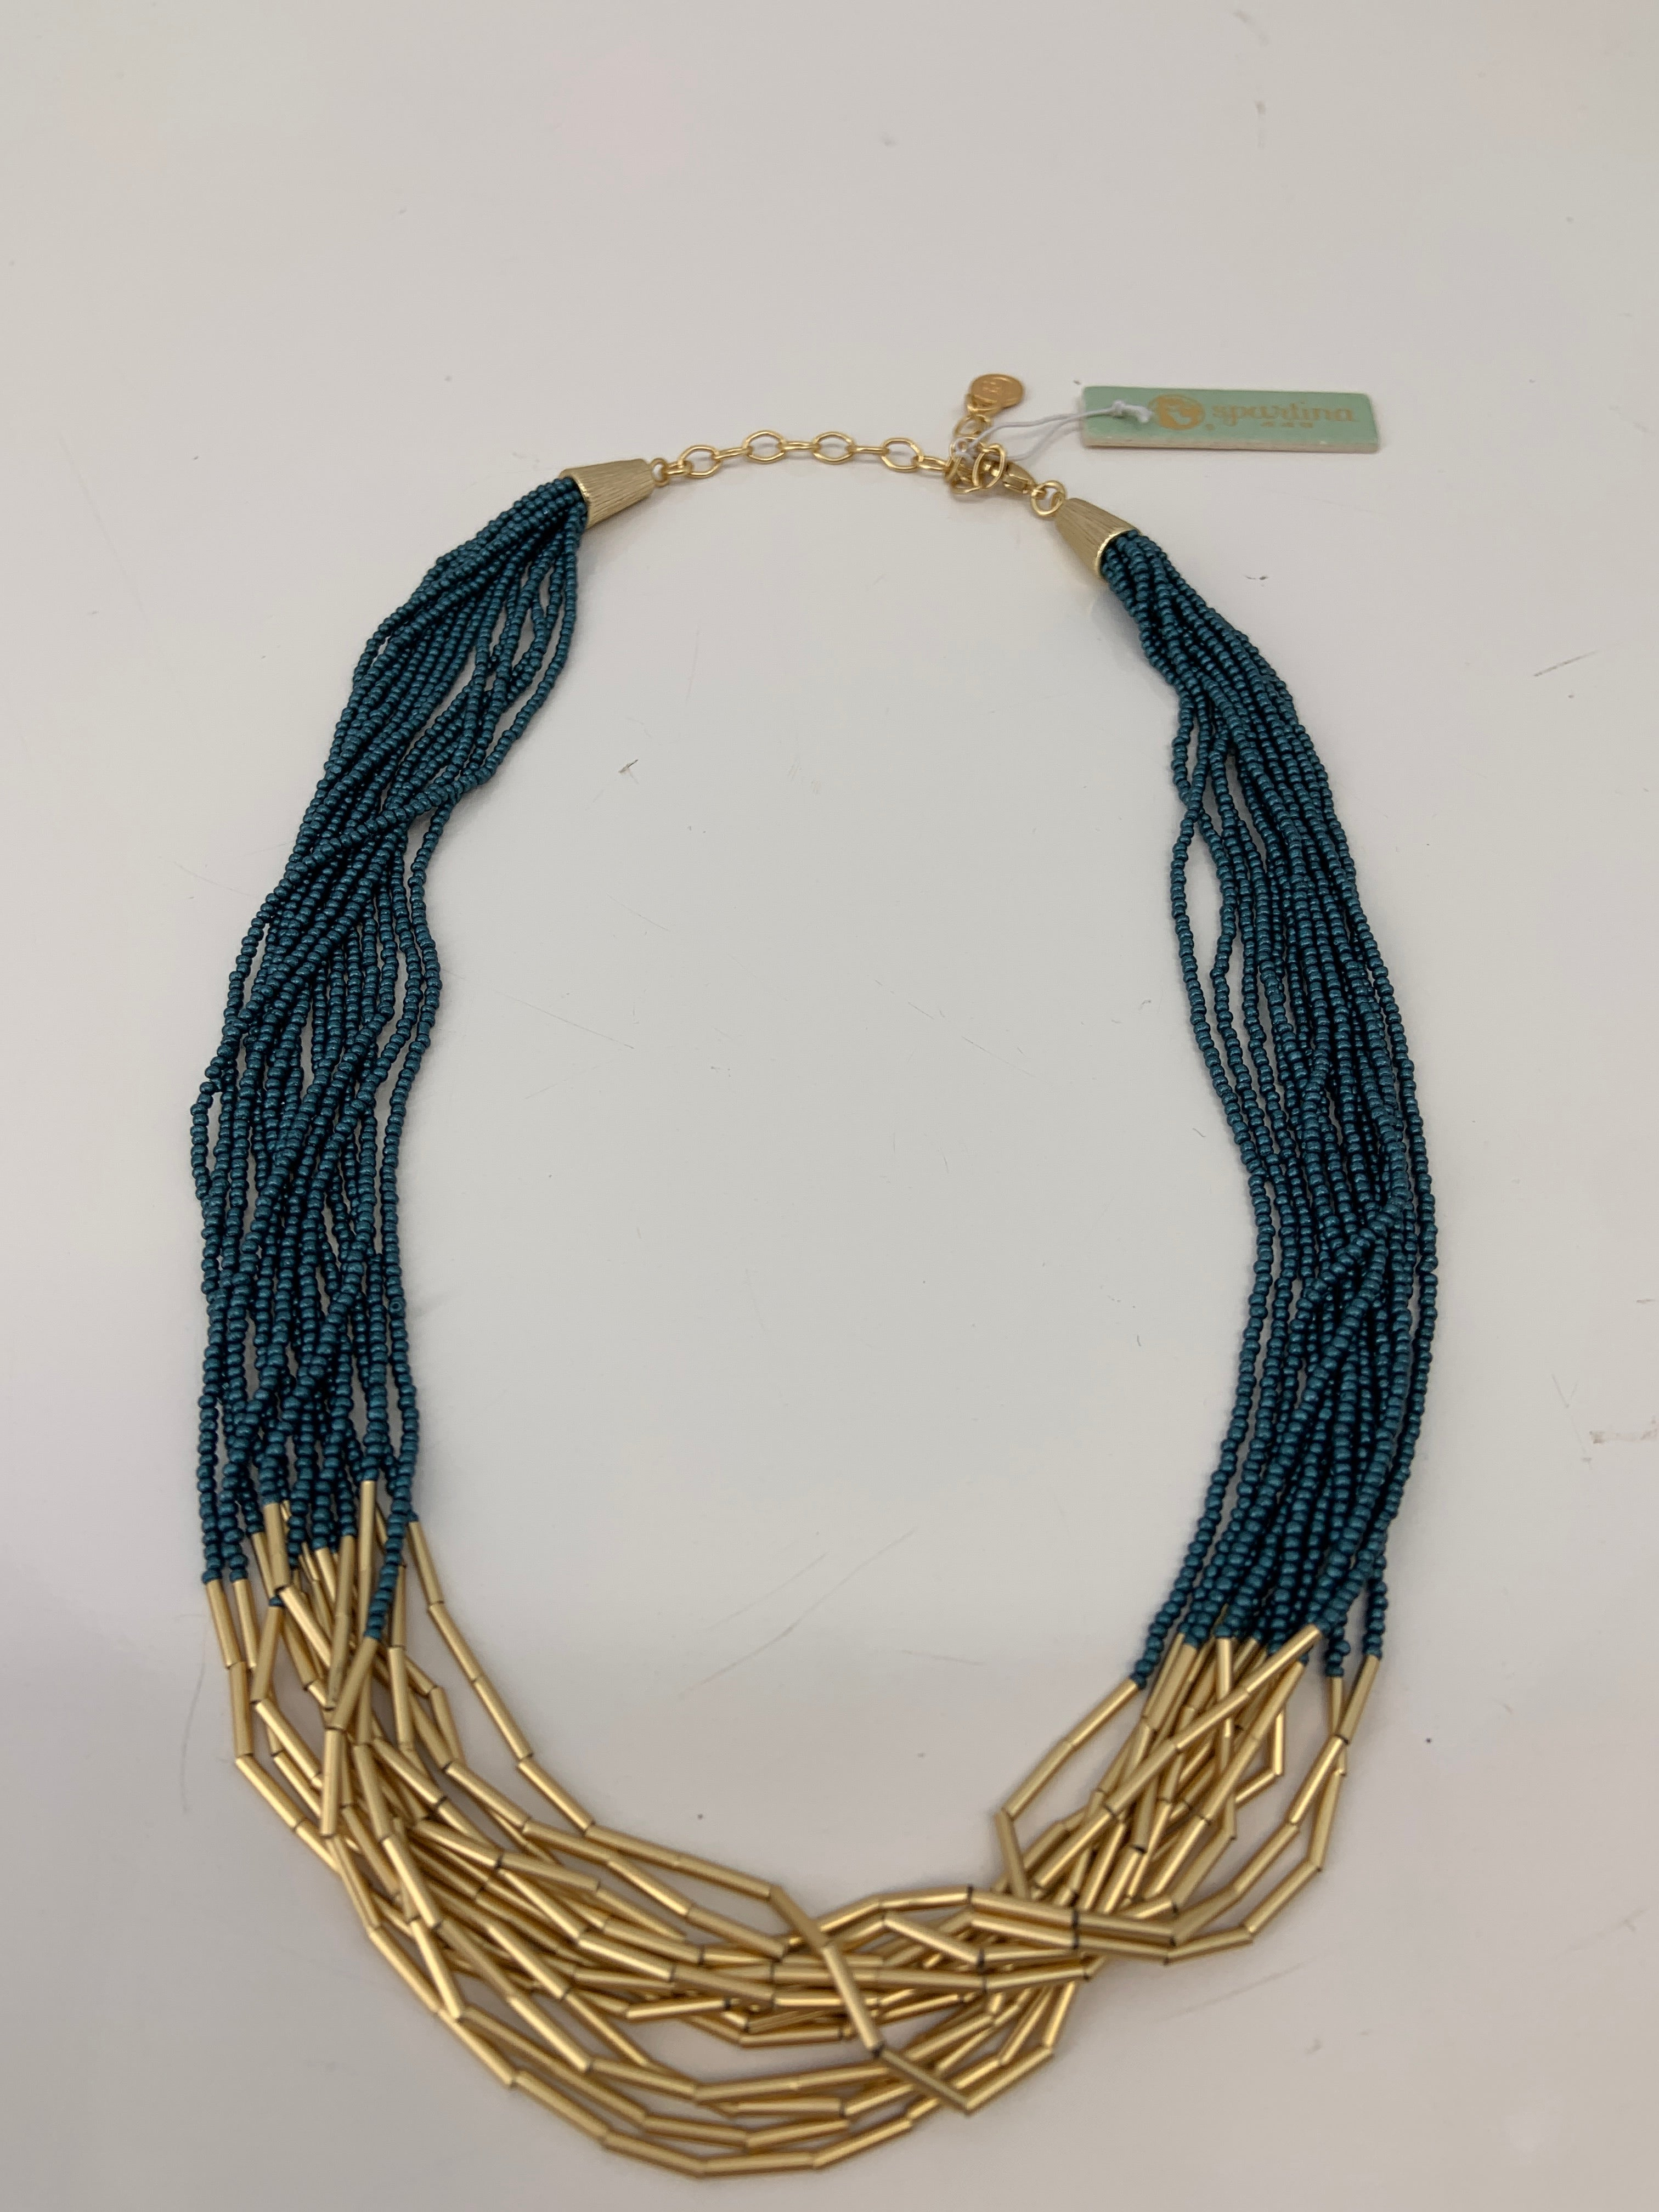 Primary Photo - BRAND: SPARTINA , STYLE: NECKLACE , COLOR: TEAL/GOLD, SKU: 127-4876-9990